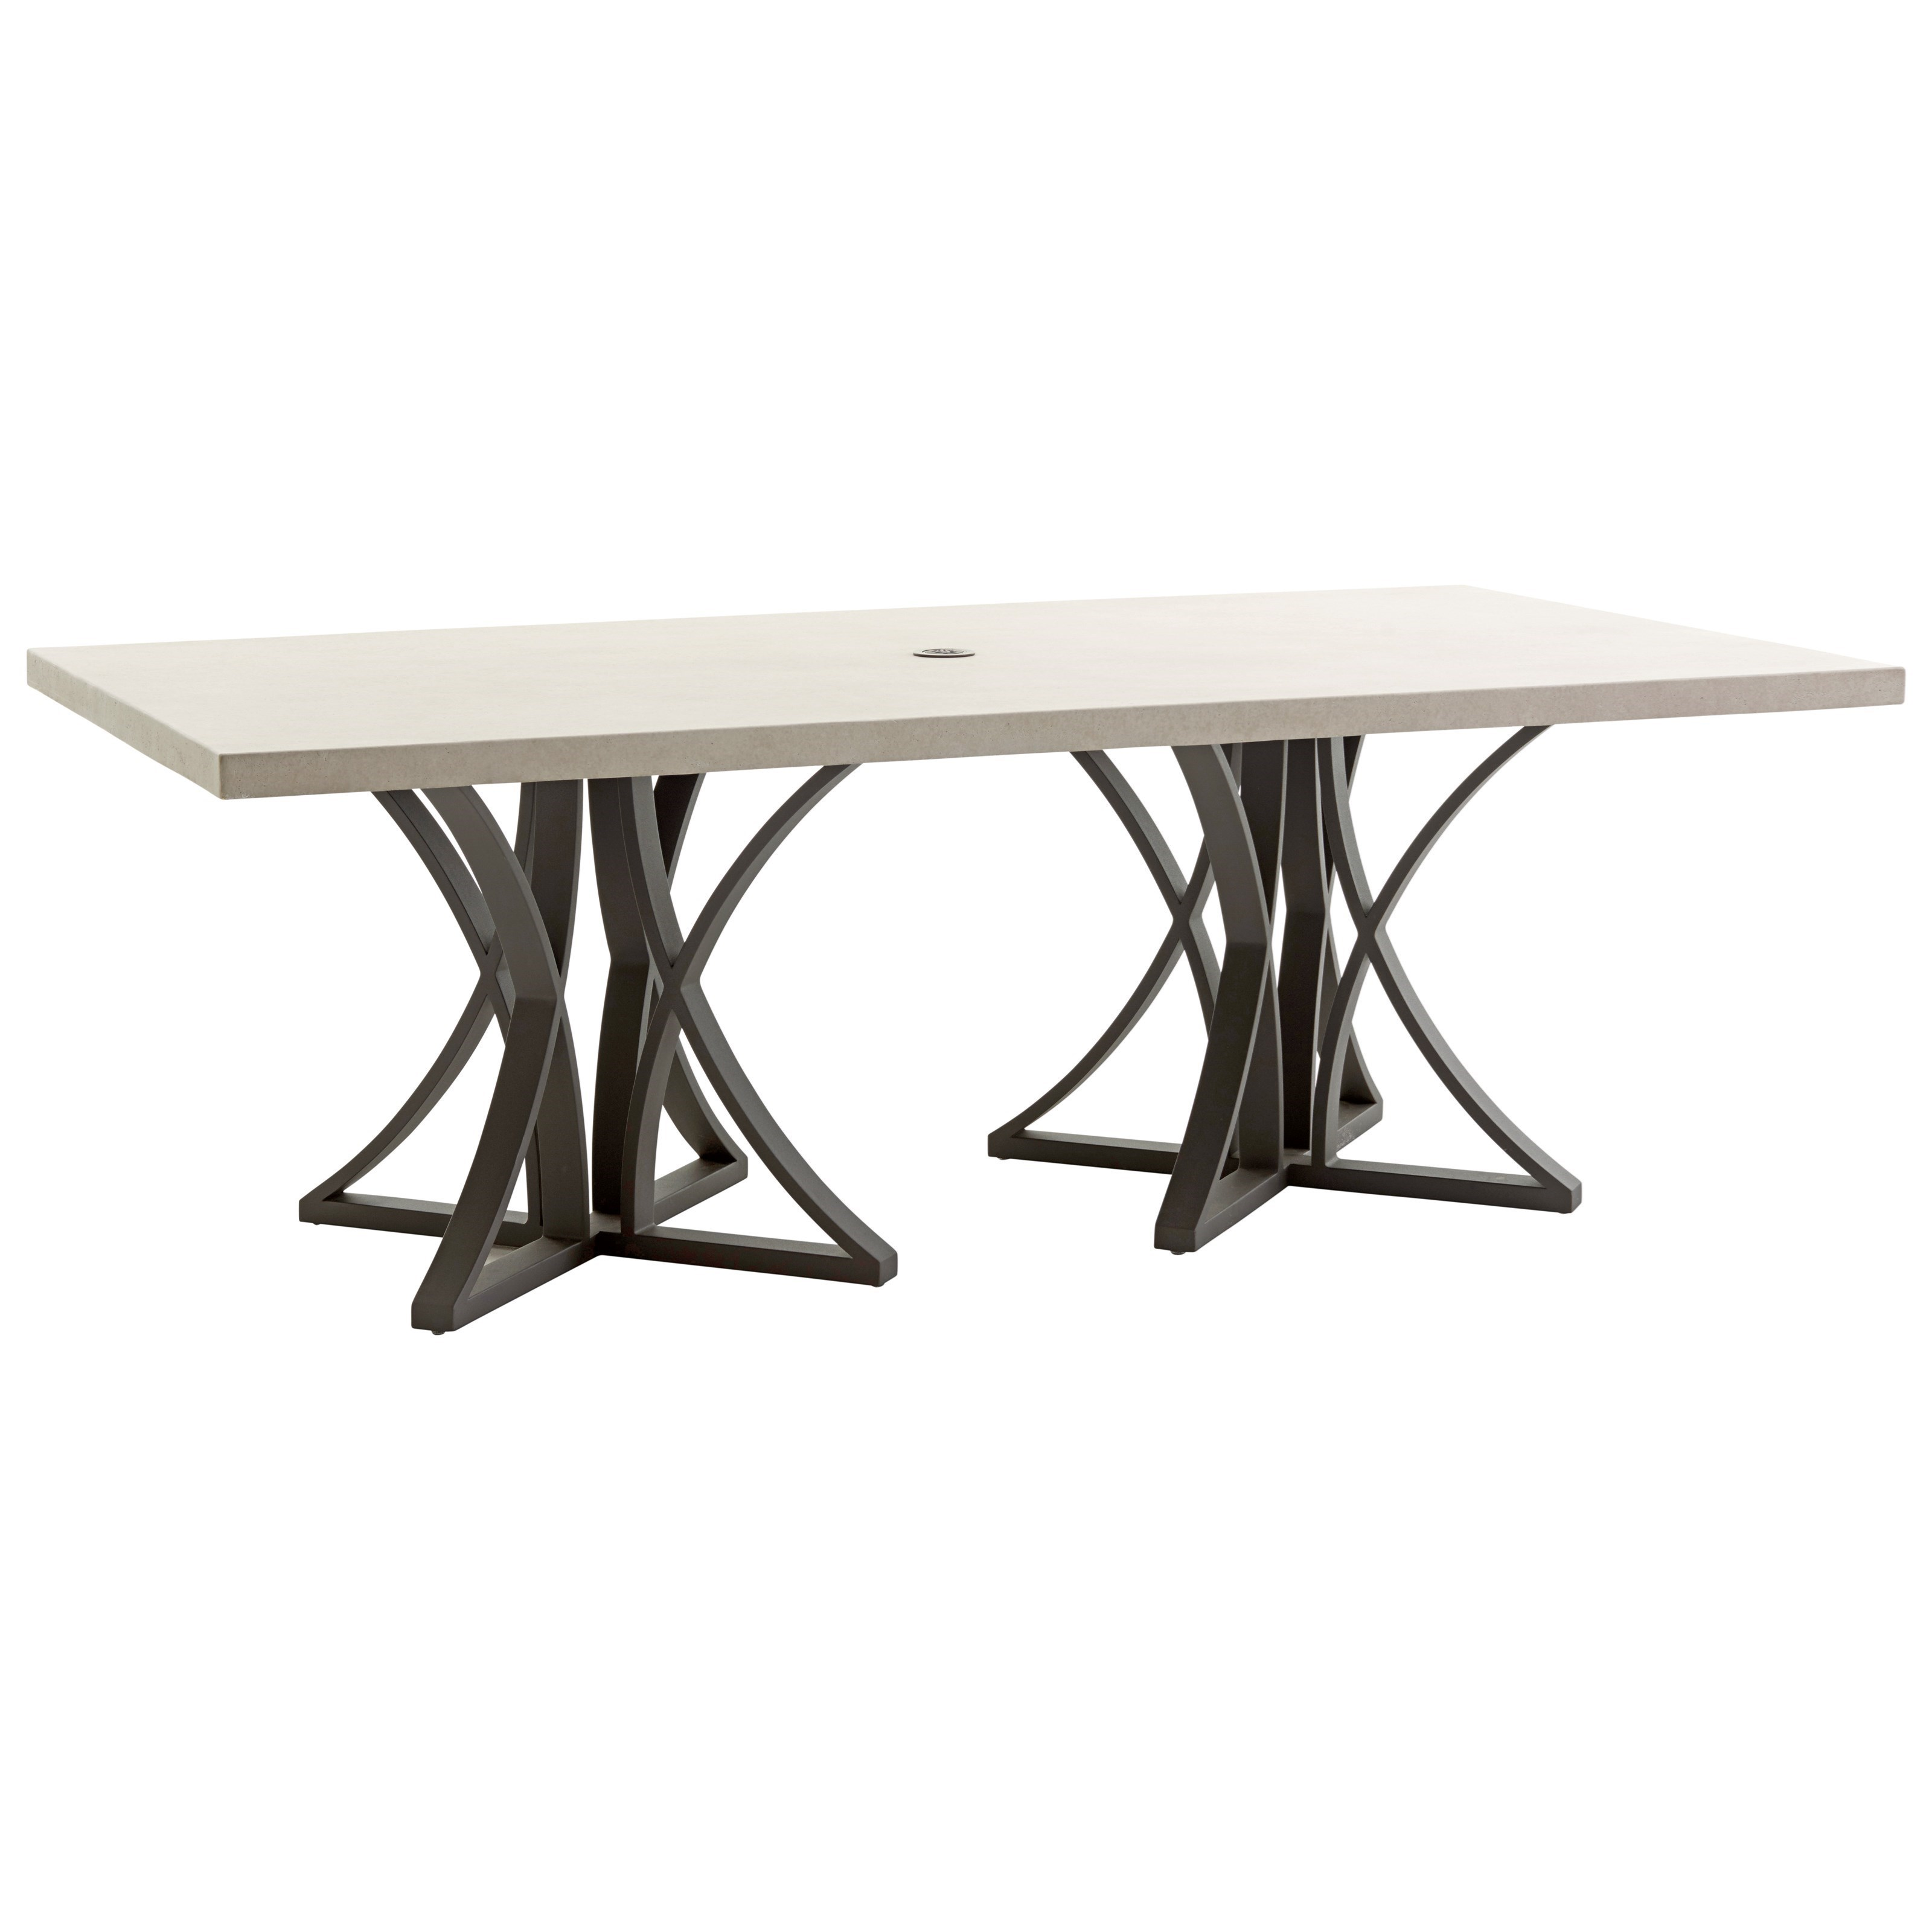 Cypress Point Ocean Terrace Outdoor Rectangular Dining Table by Tommy Bahama Outdoor Living at Baer's Furniture